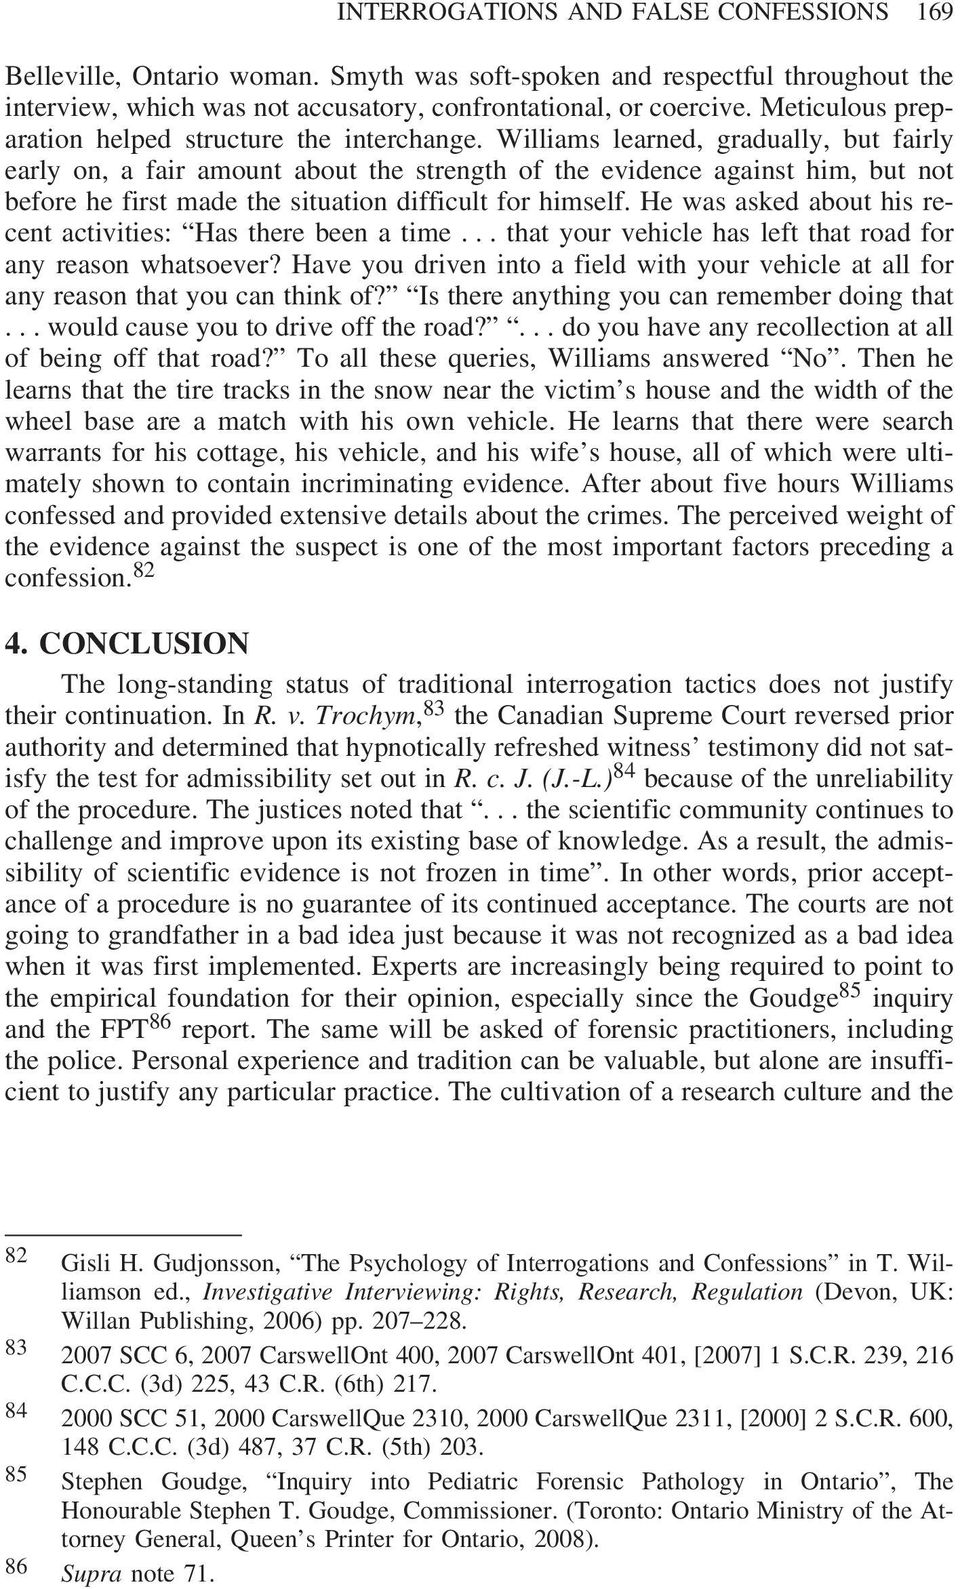 Williams learned, gradually, but fairly early on, a fair amount about the strength of the evidence against him, but not before he first made the situation difficult for himself.